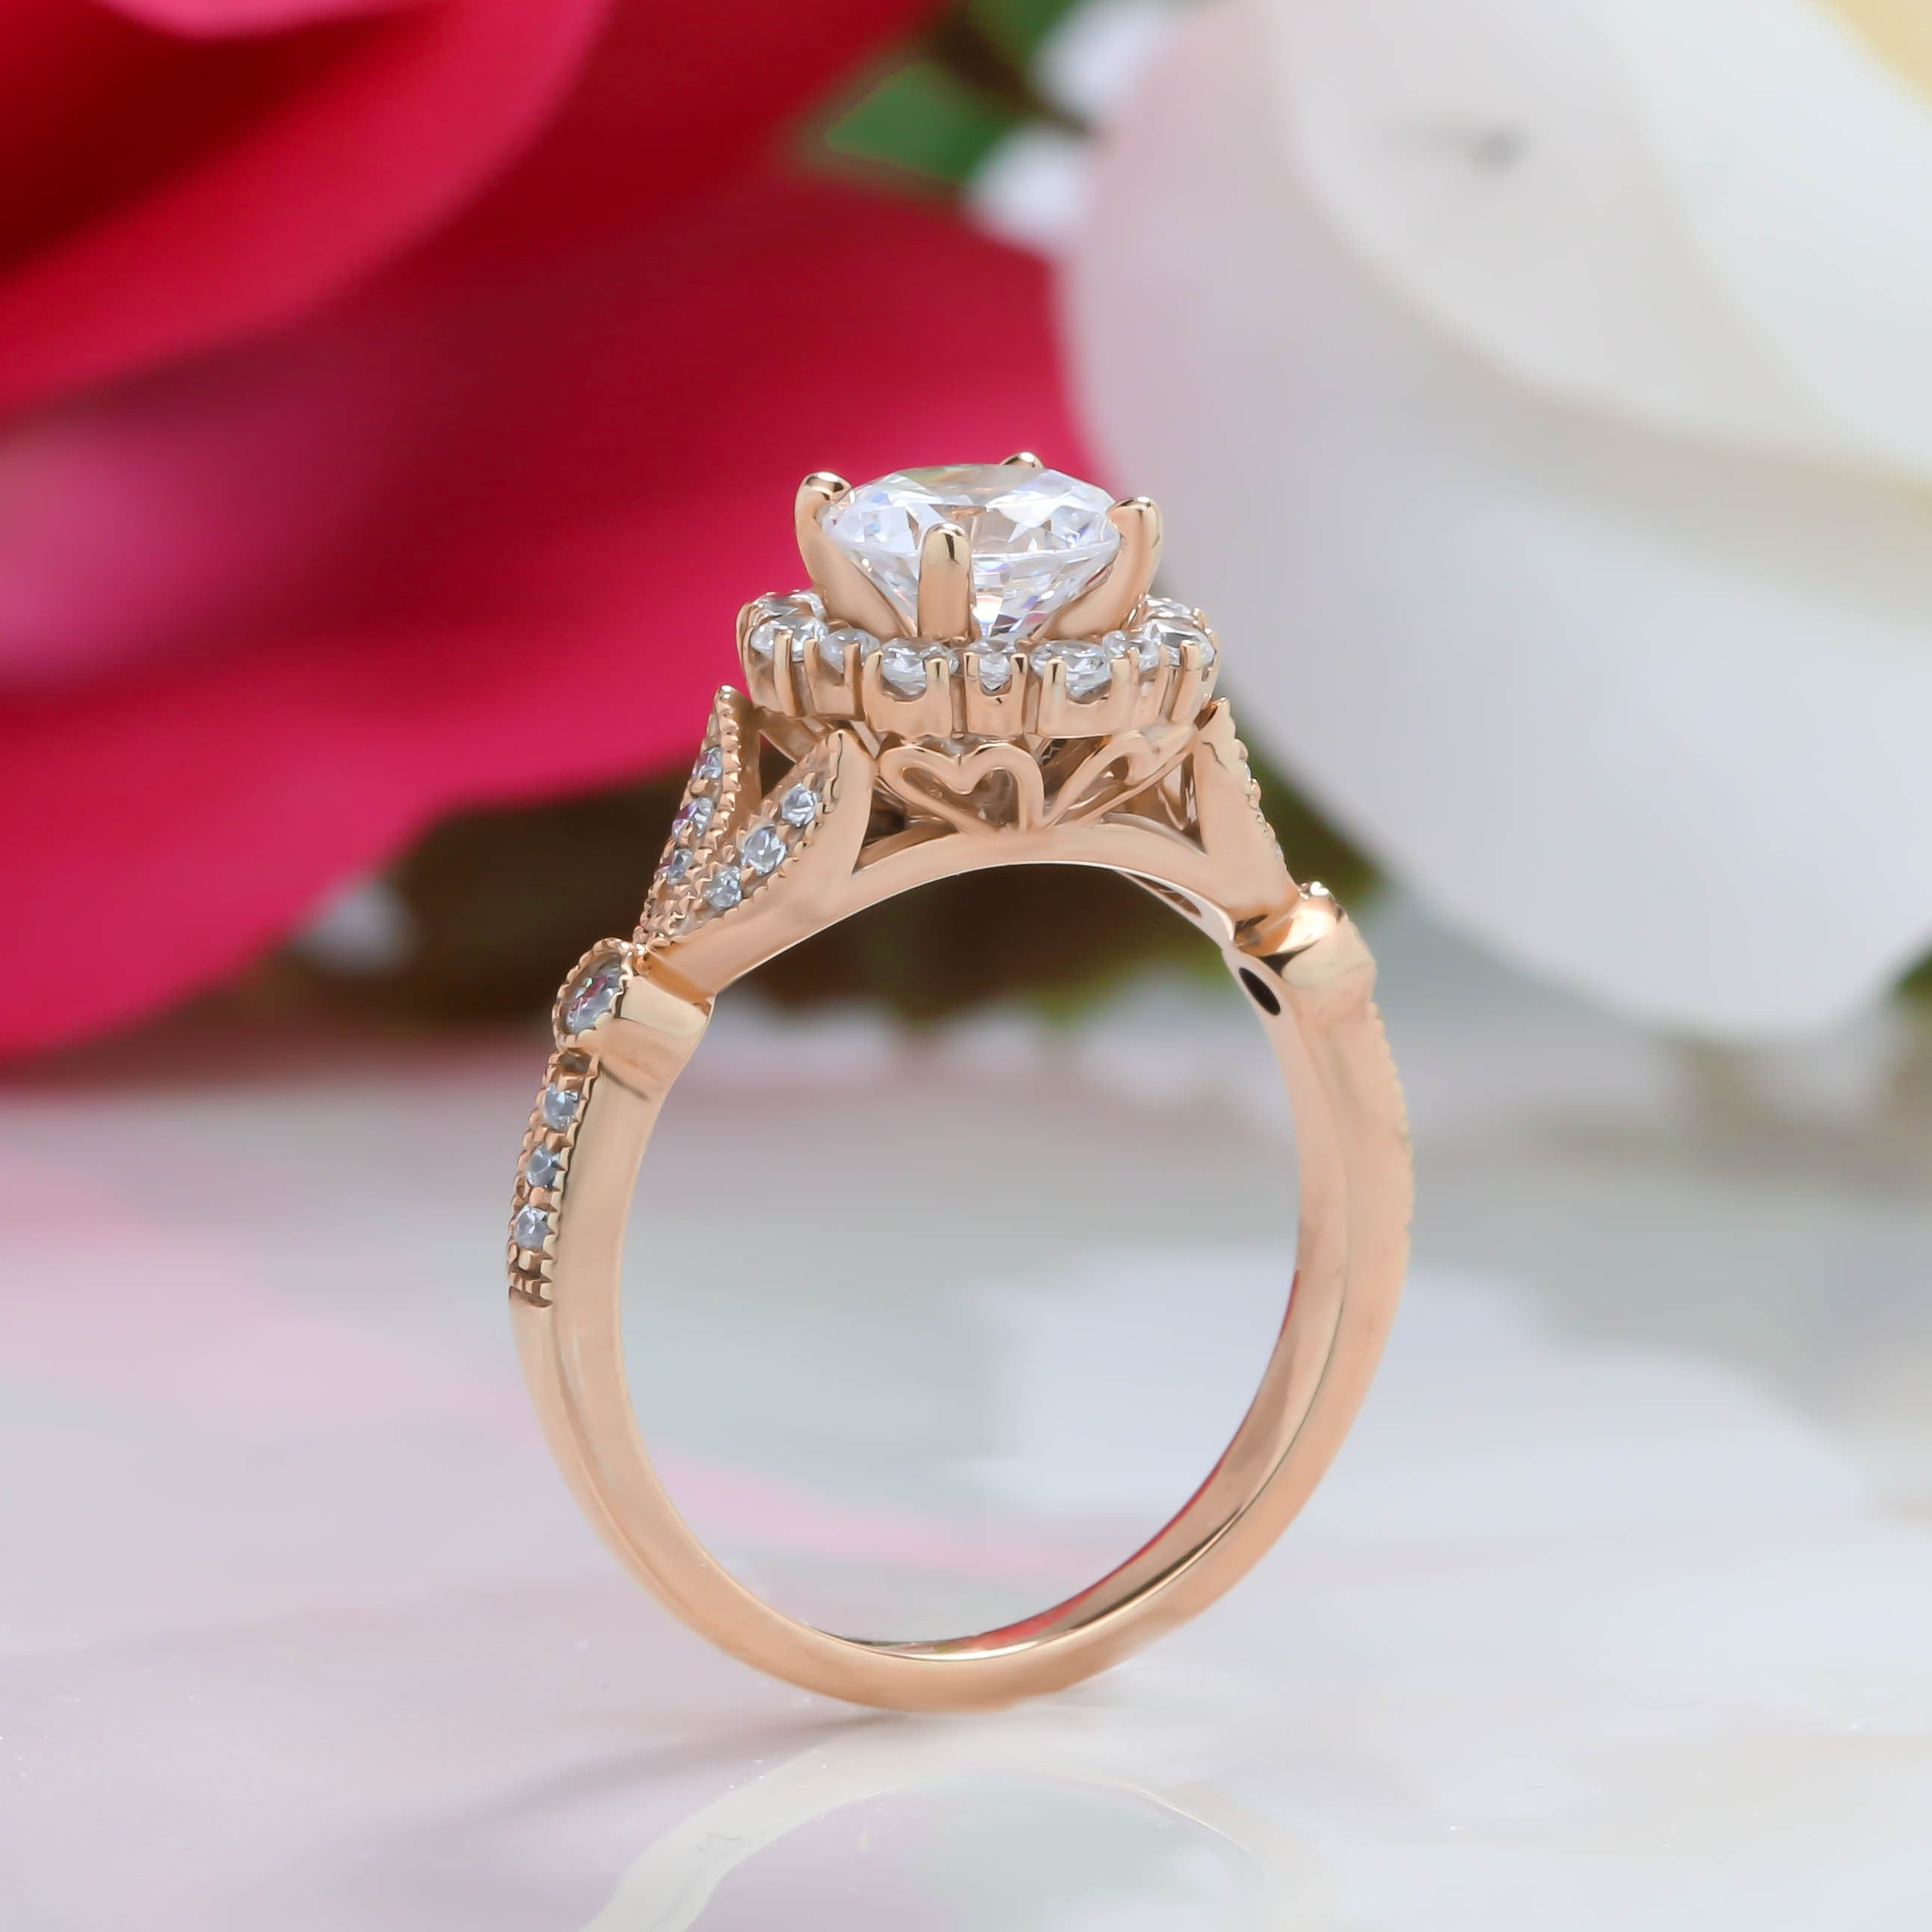 Reserved For Client Payment 1  Vintage Floral Style Halo Diamond and Moissanite Engagement Ring - Lilly RP